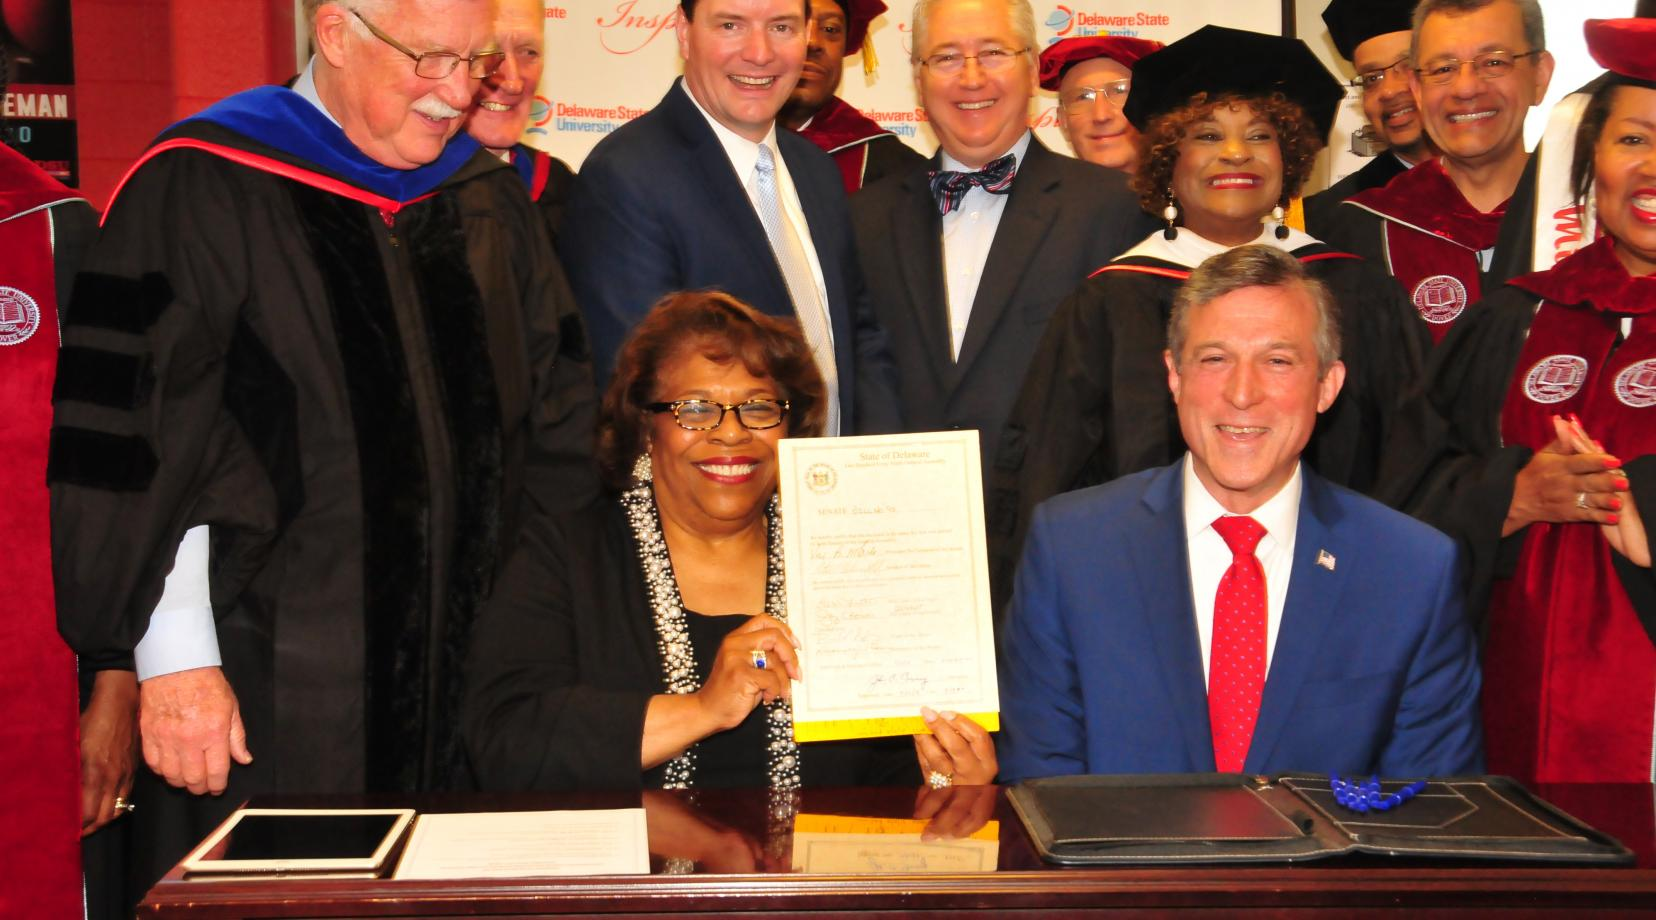 Interim DSU President Wilma Mishoe holds the legislation just signed May 12 by Gov. John Carney (seated next to her) that adds a fourth year of state funding to the Inspire Scholarship Program.